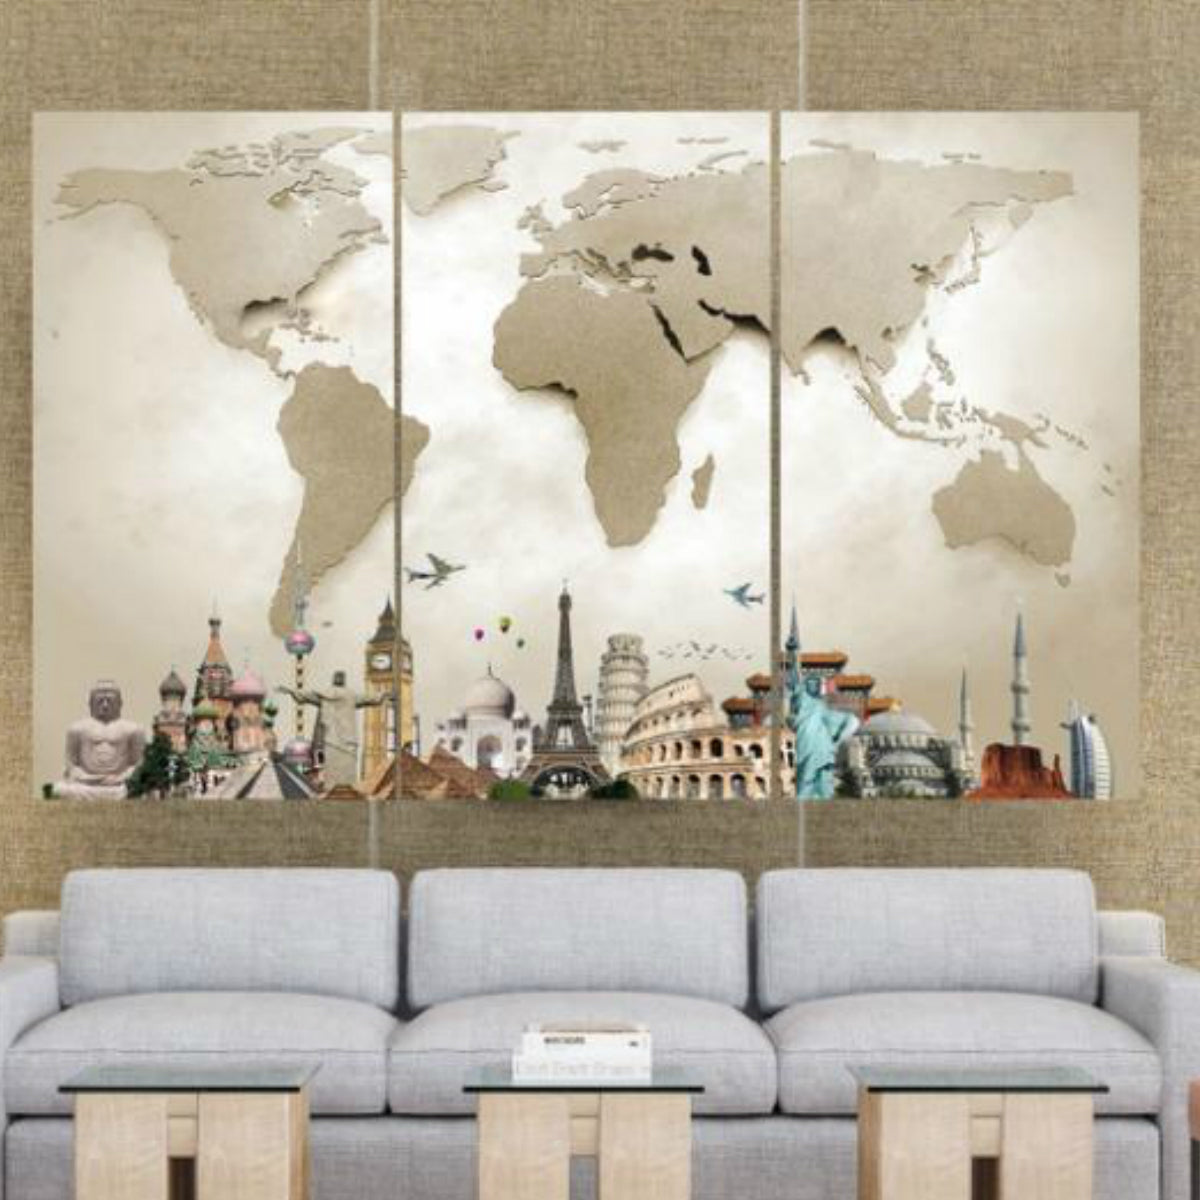 Around the world map canvas lush gothic around the world map canvas gumiabroncs